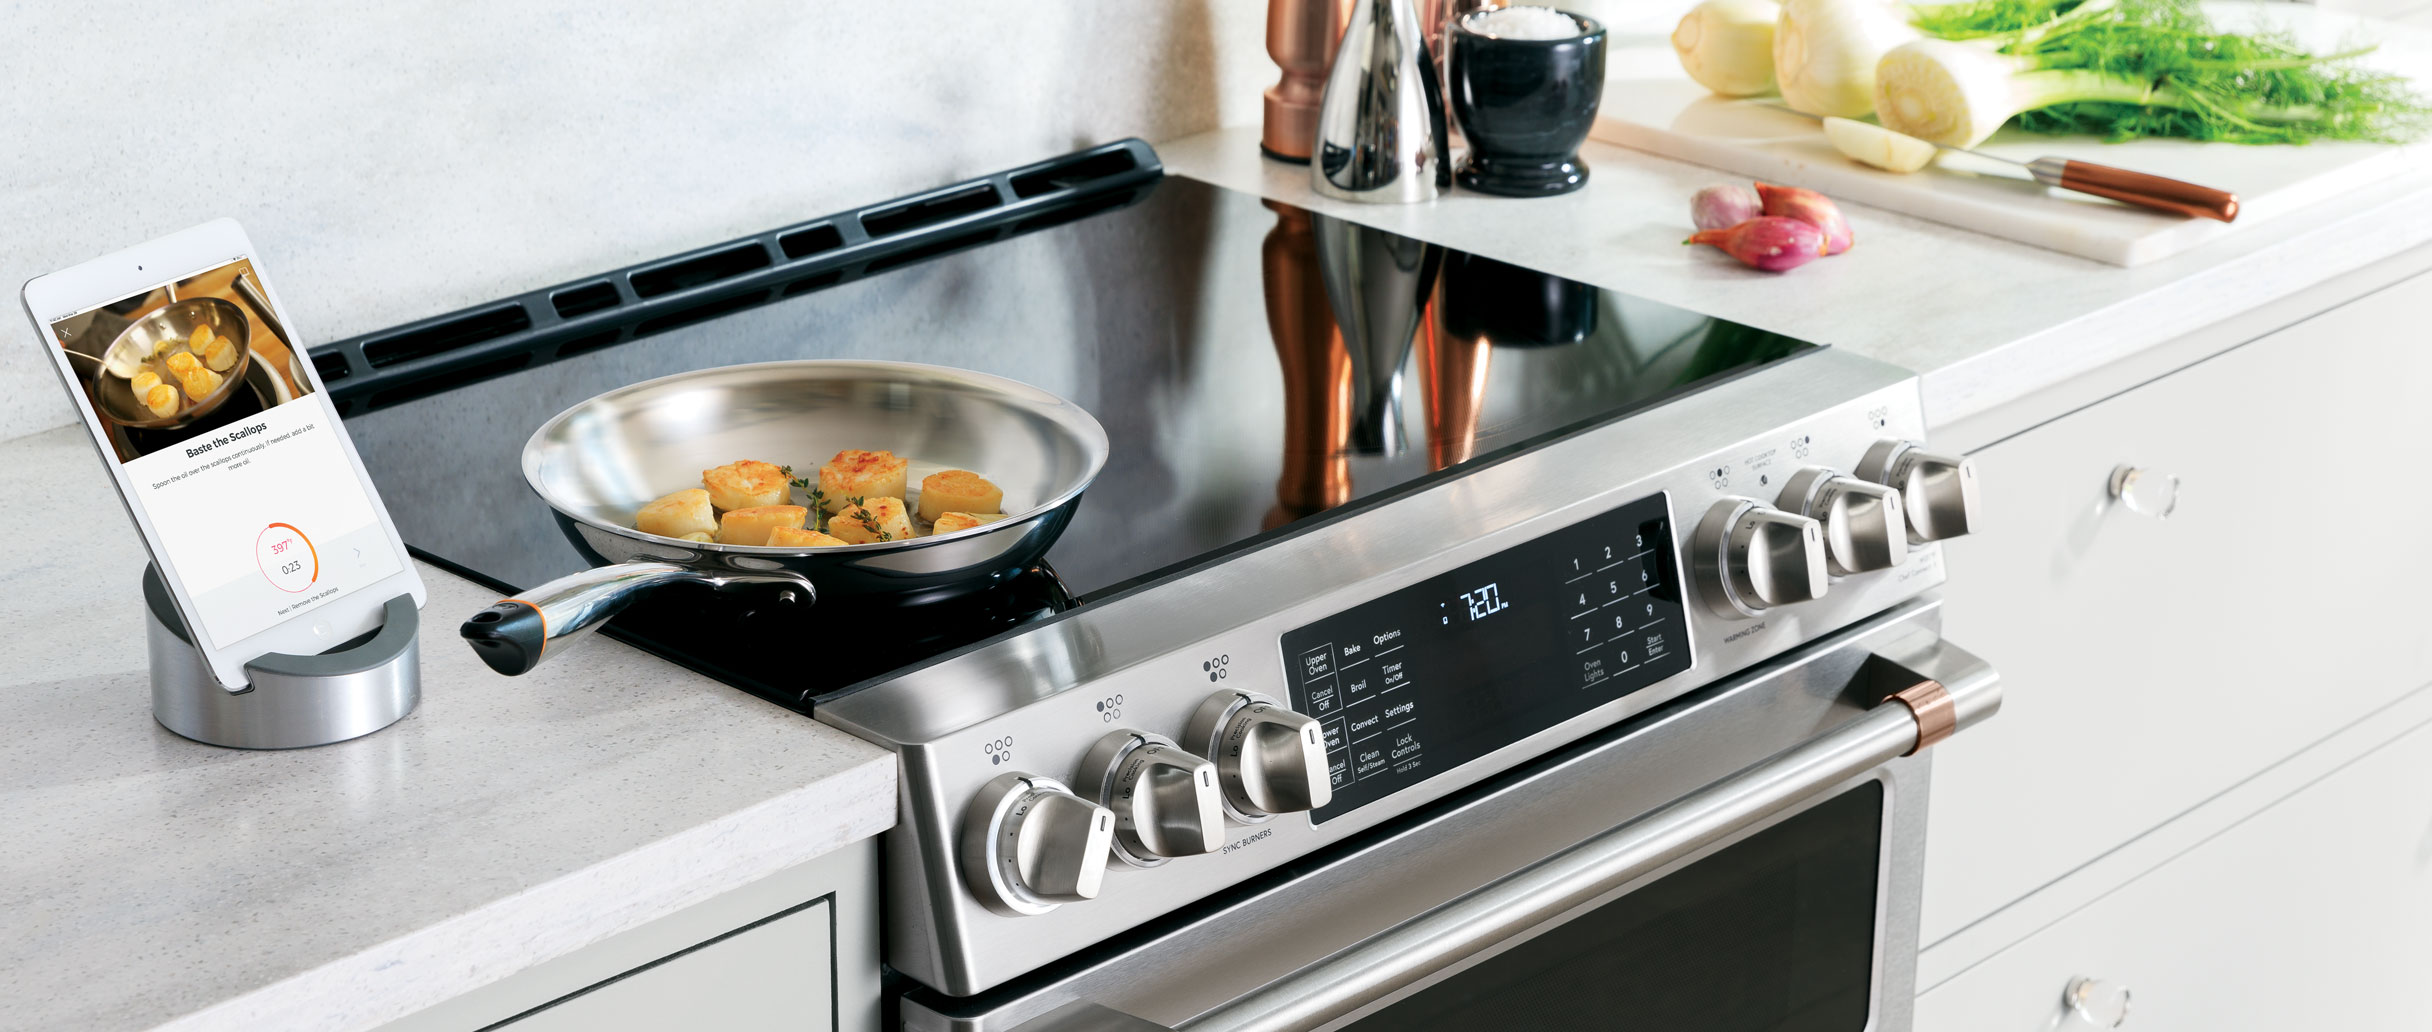 Cafe stainless steel induction range guided cooking